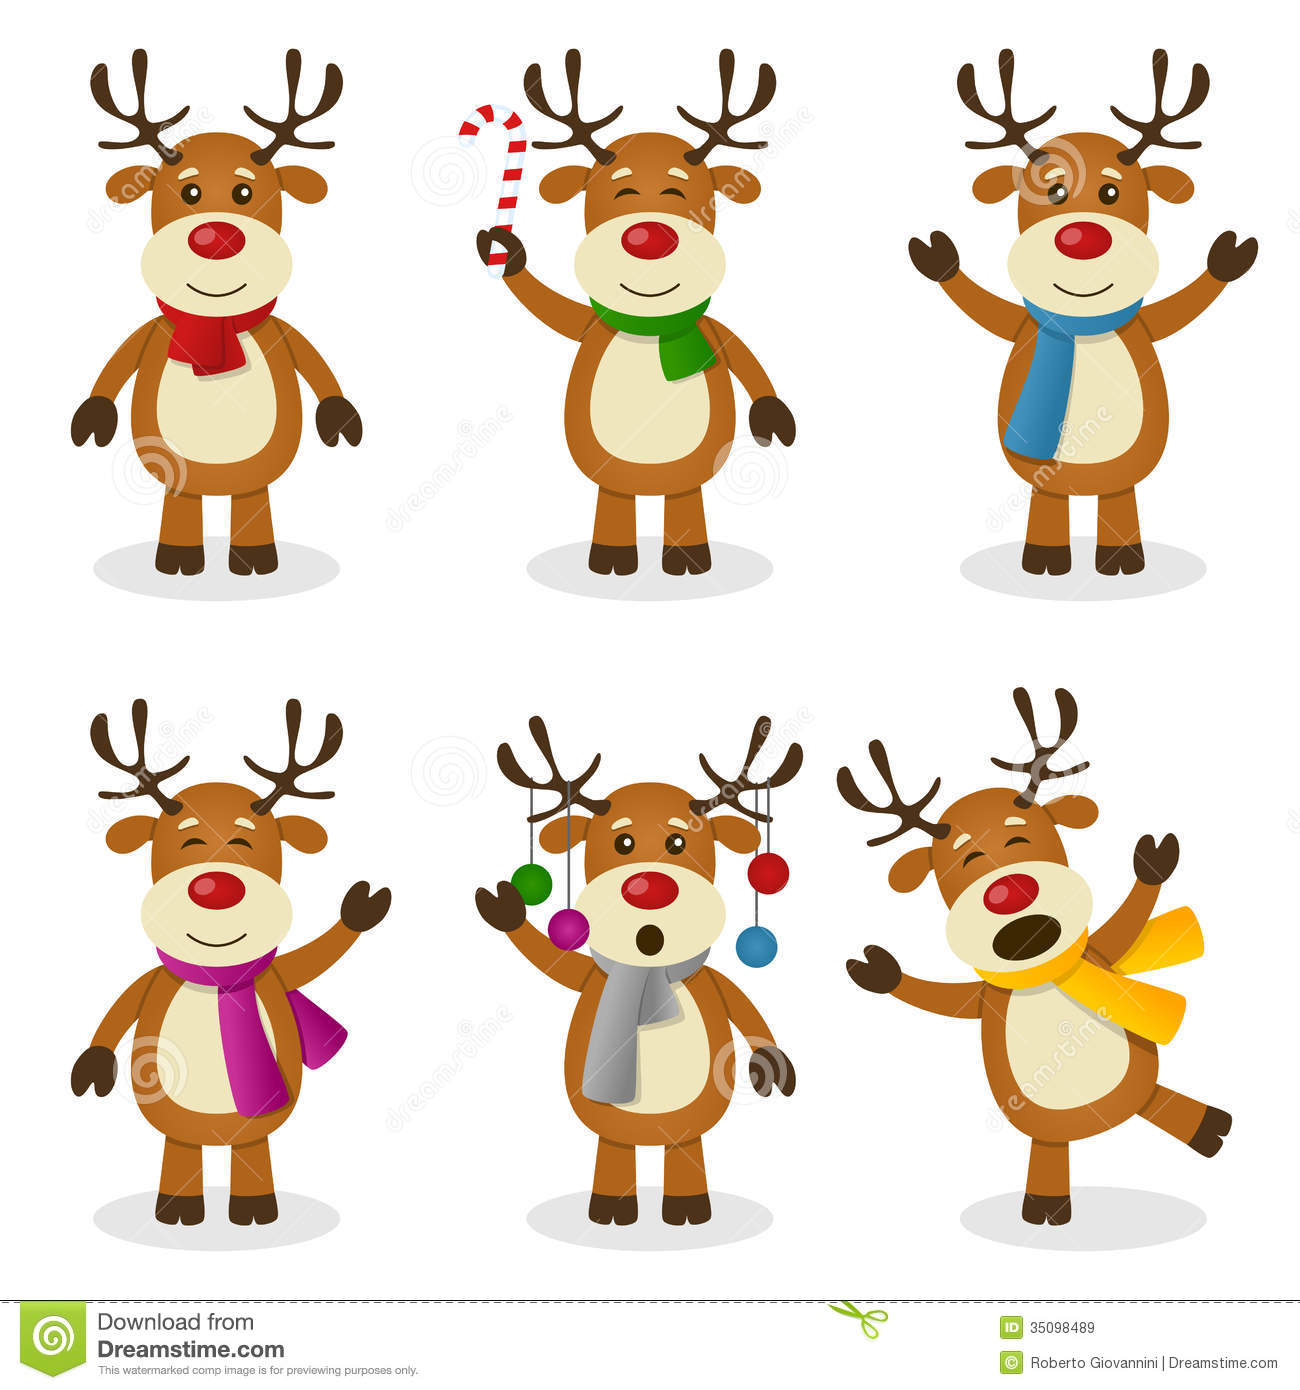 Reindeer Pictures Images Galleryhip Com The